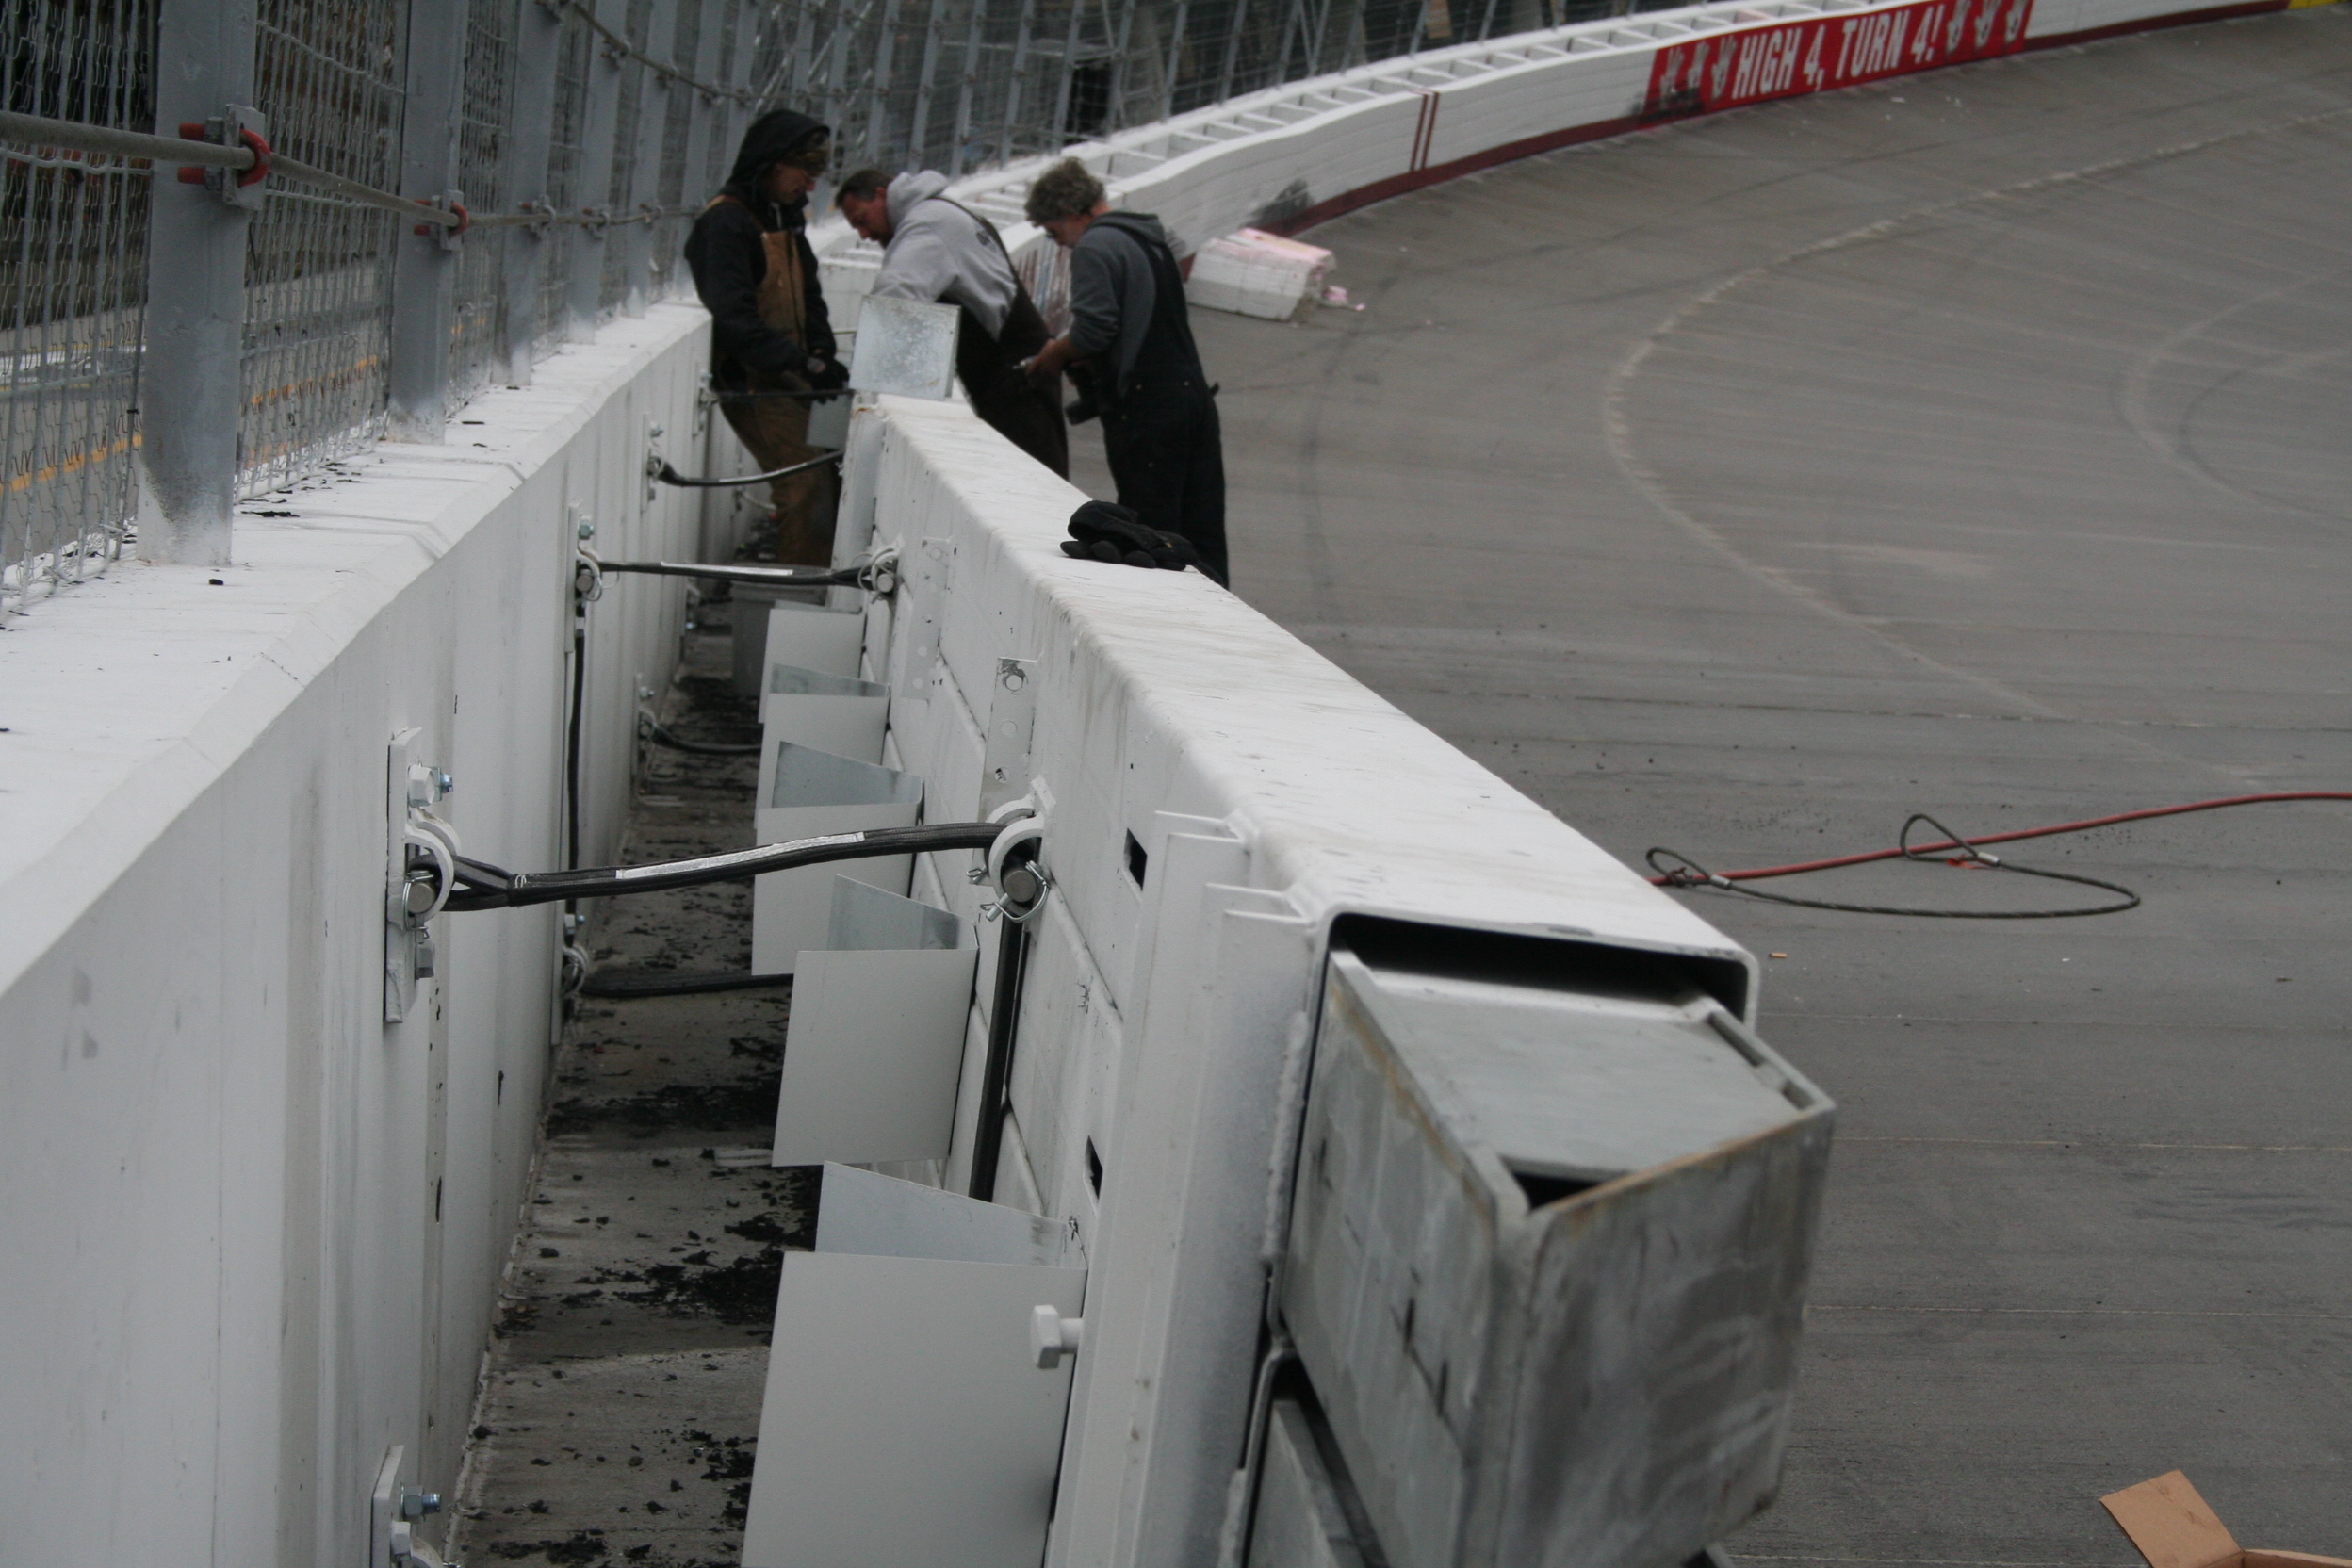 Instillation of the SAFER barrier at the Bristol Motor Speedway and Dragway in 2010.